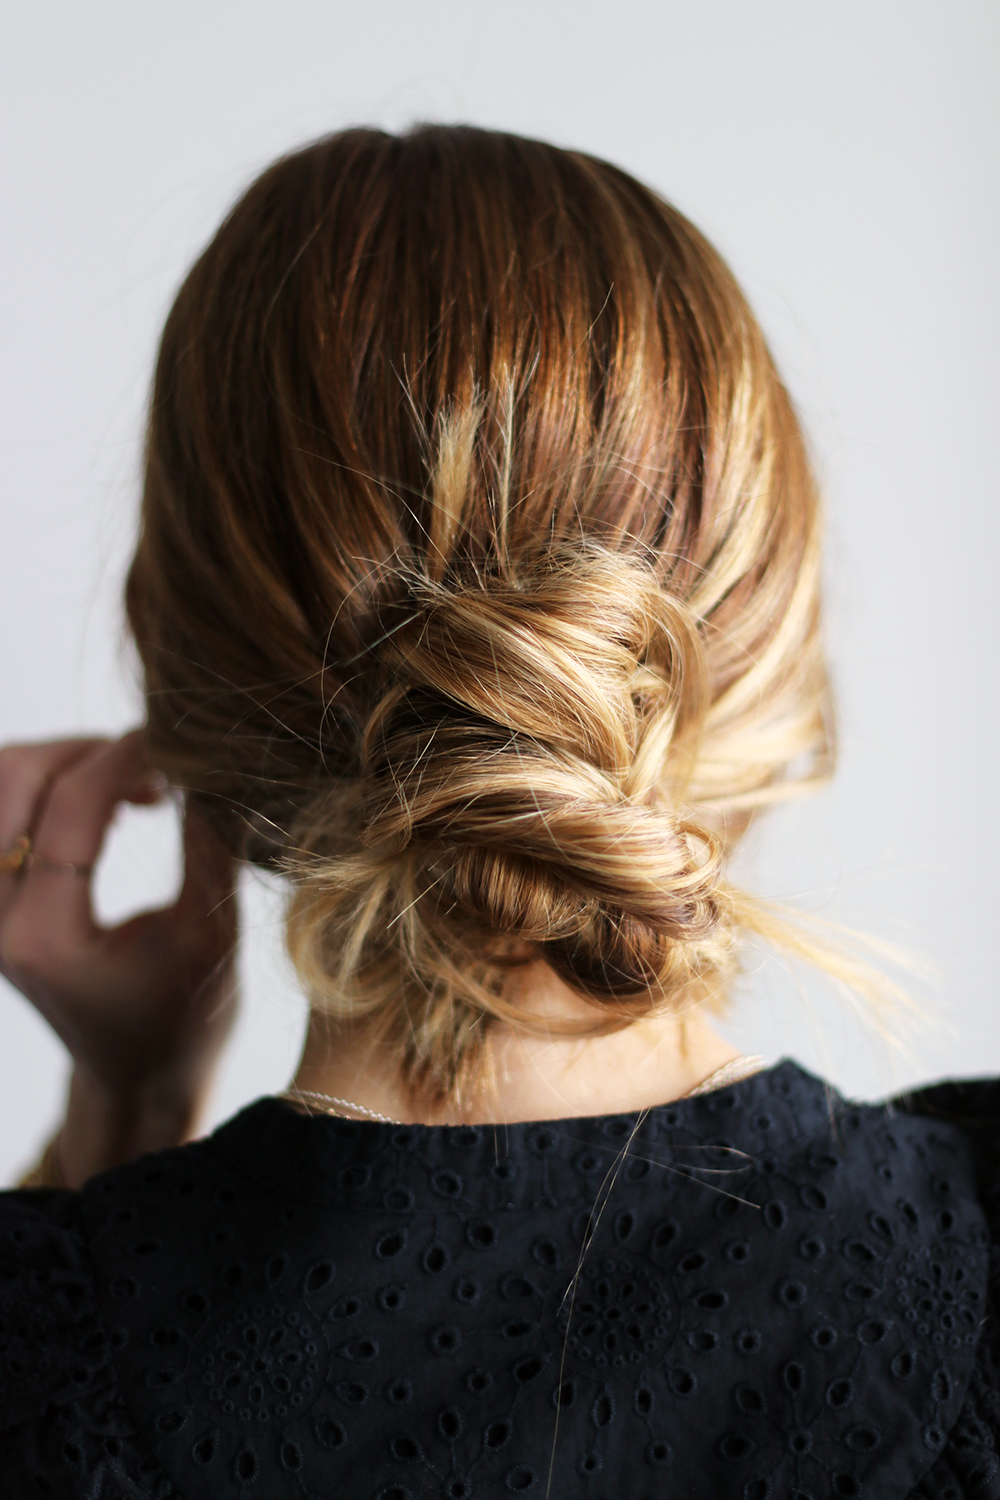 Diy File Three Easy Bun Hairstyles For The Holidays The Vault Files